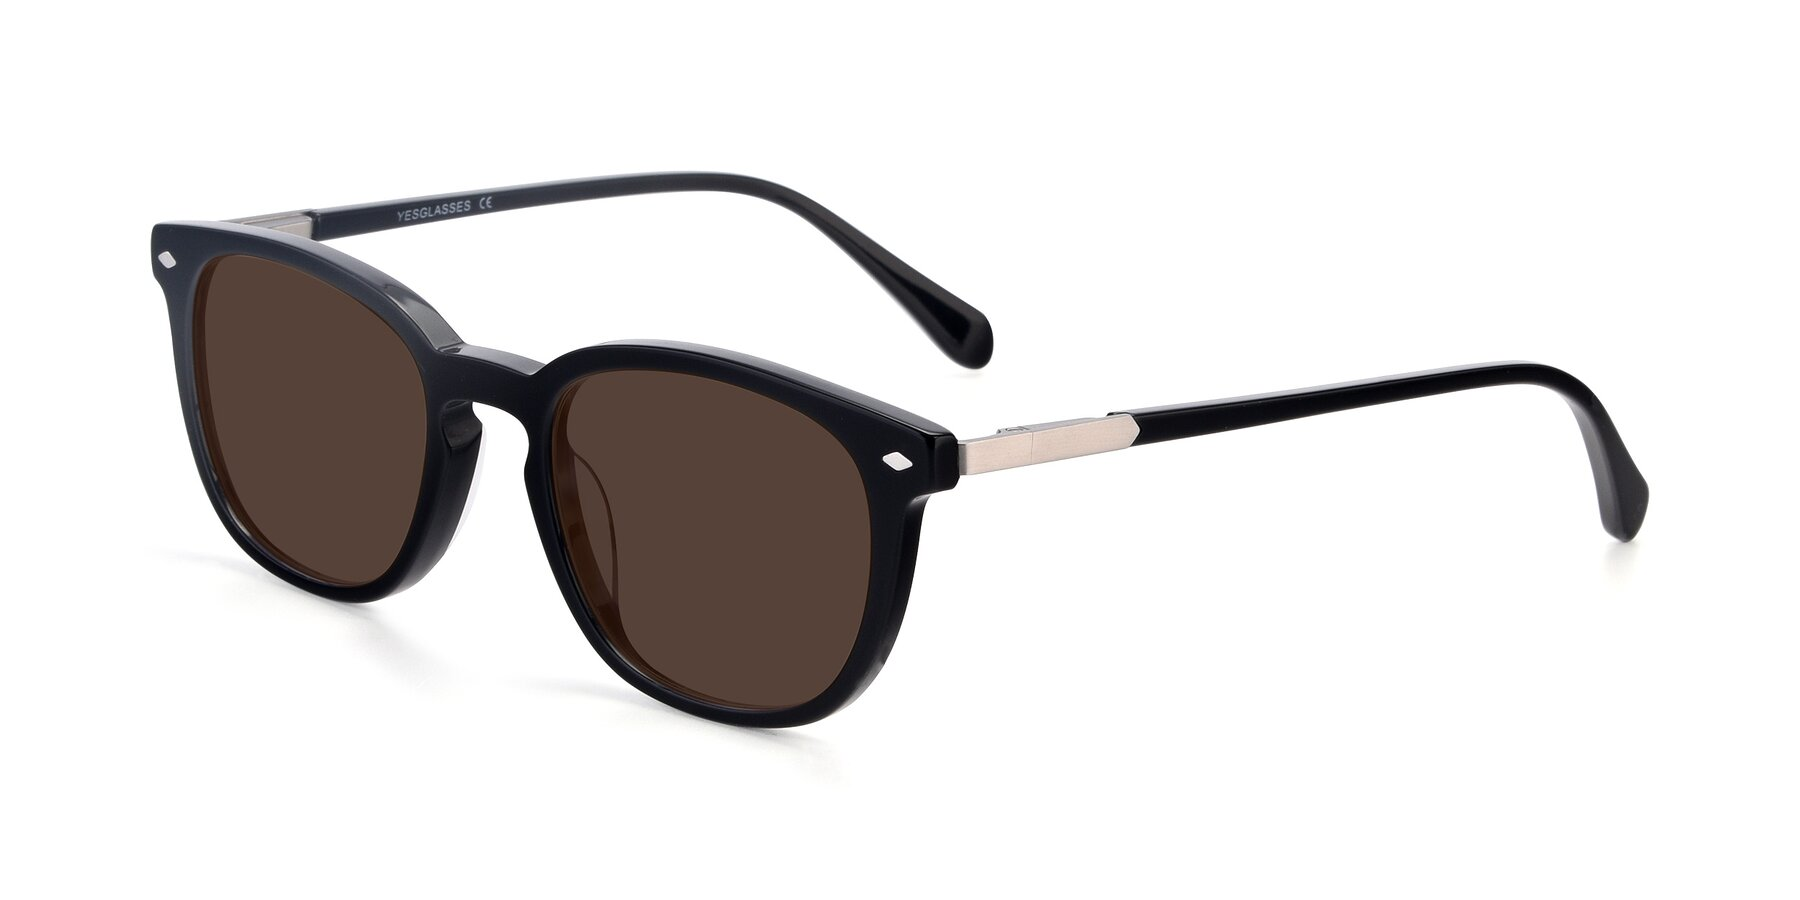 Angle of 17578 in Black with Brown Tinted Lenses